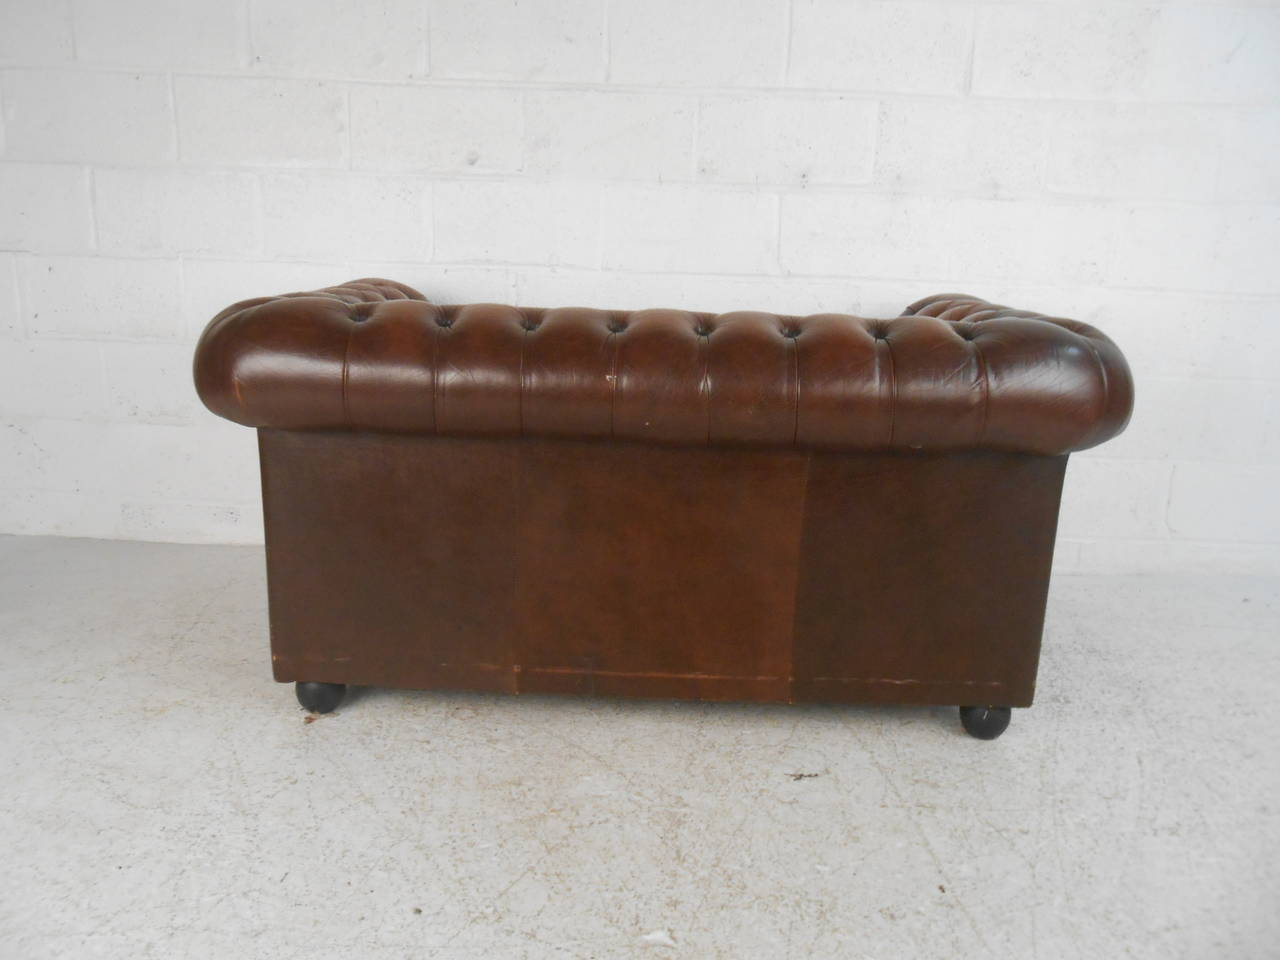 Uniquely sized vintage leather chesterfield sofa at 1stdibs for Decor jewelry chesterfield